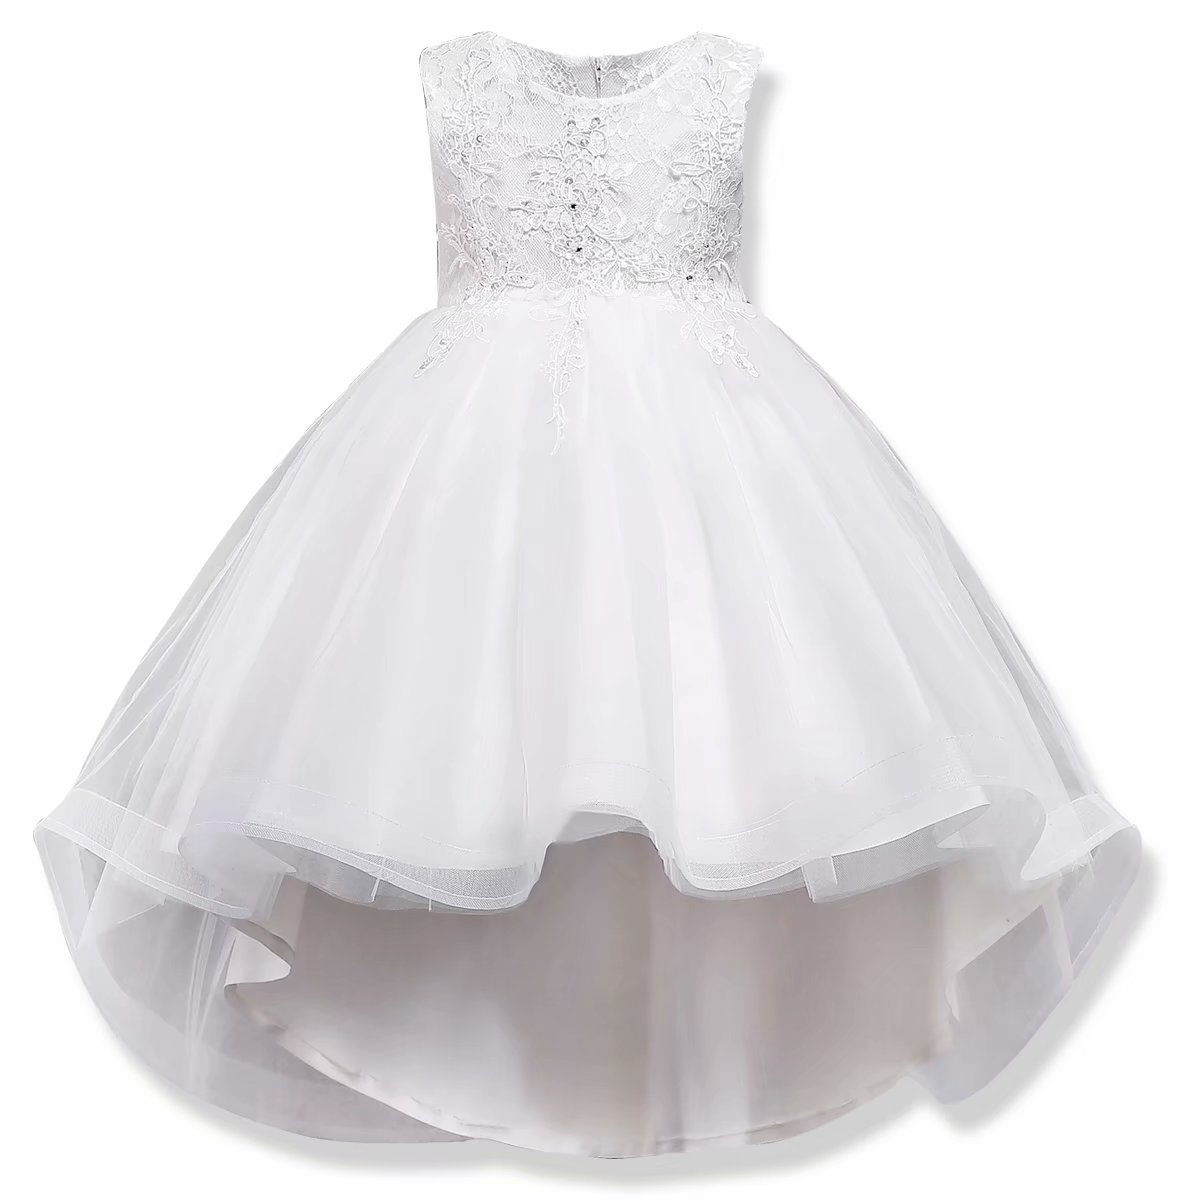 AYOMIS Girls Lace Princess Party Formal Dresses Elegant Pageant Wedding Bridesmaid Prom High-Low Gown (White - Full,5-6Y)